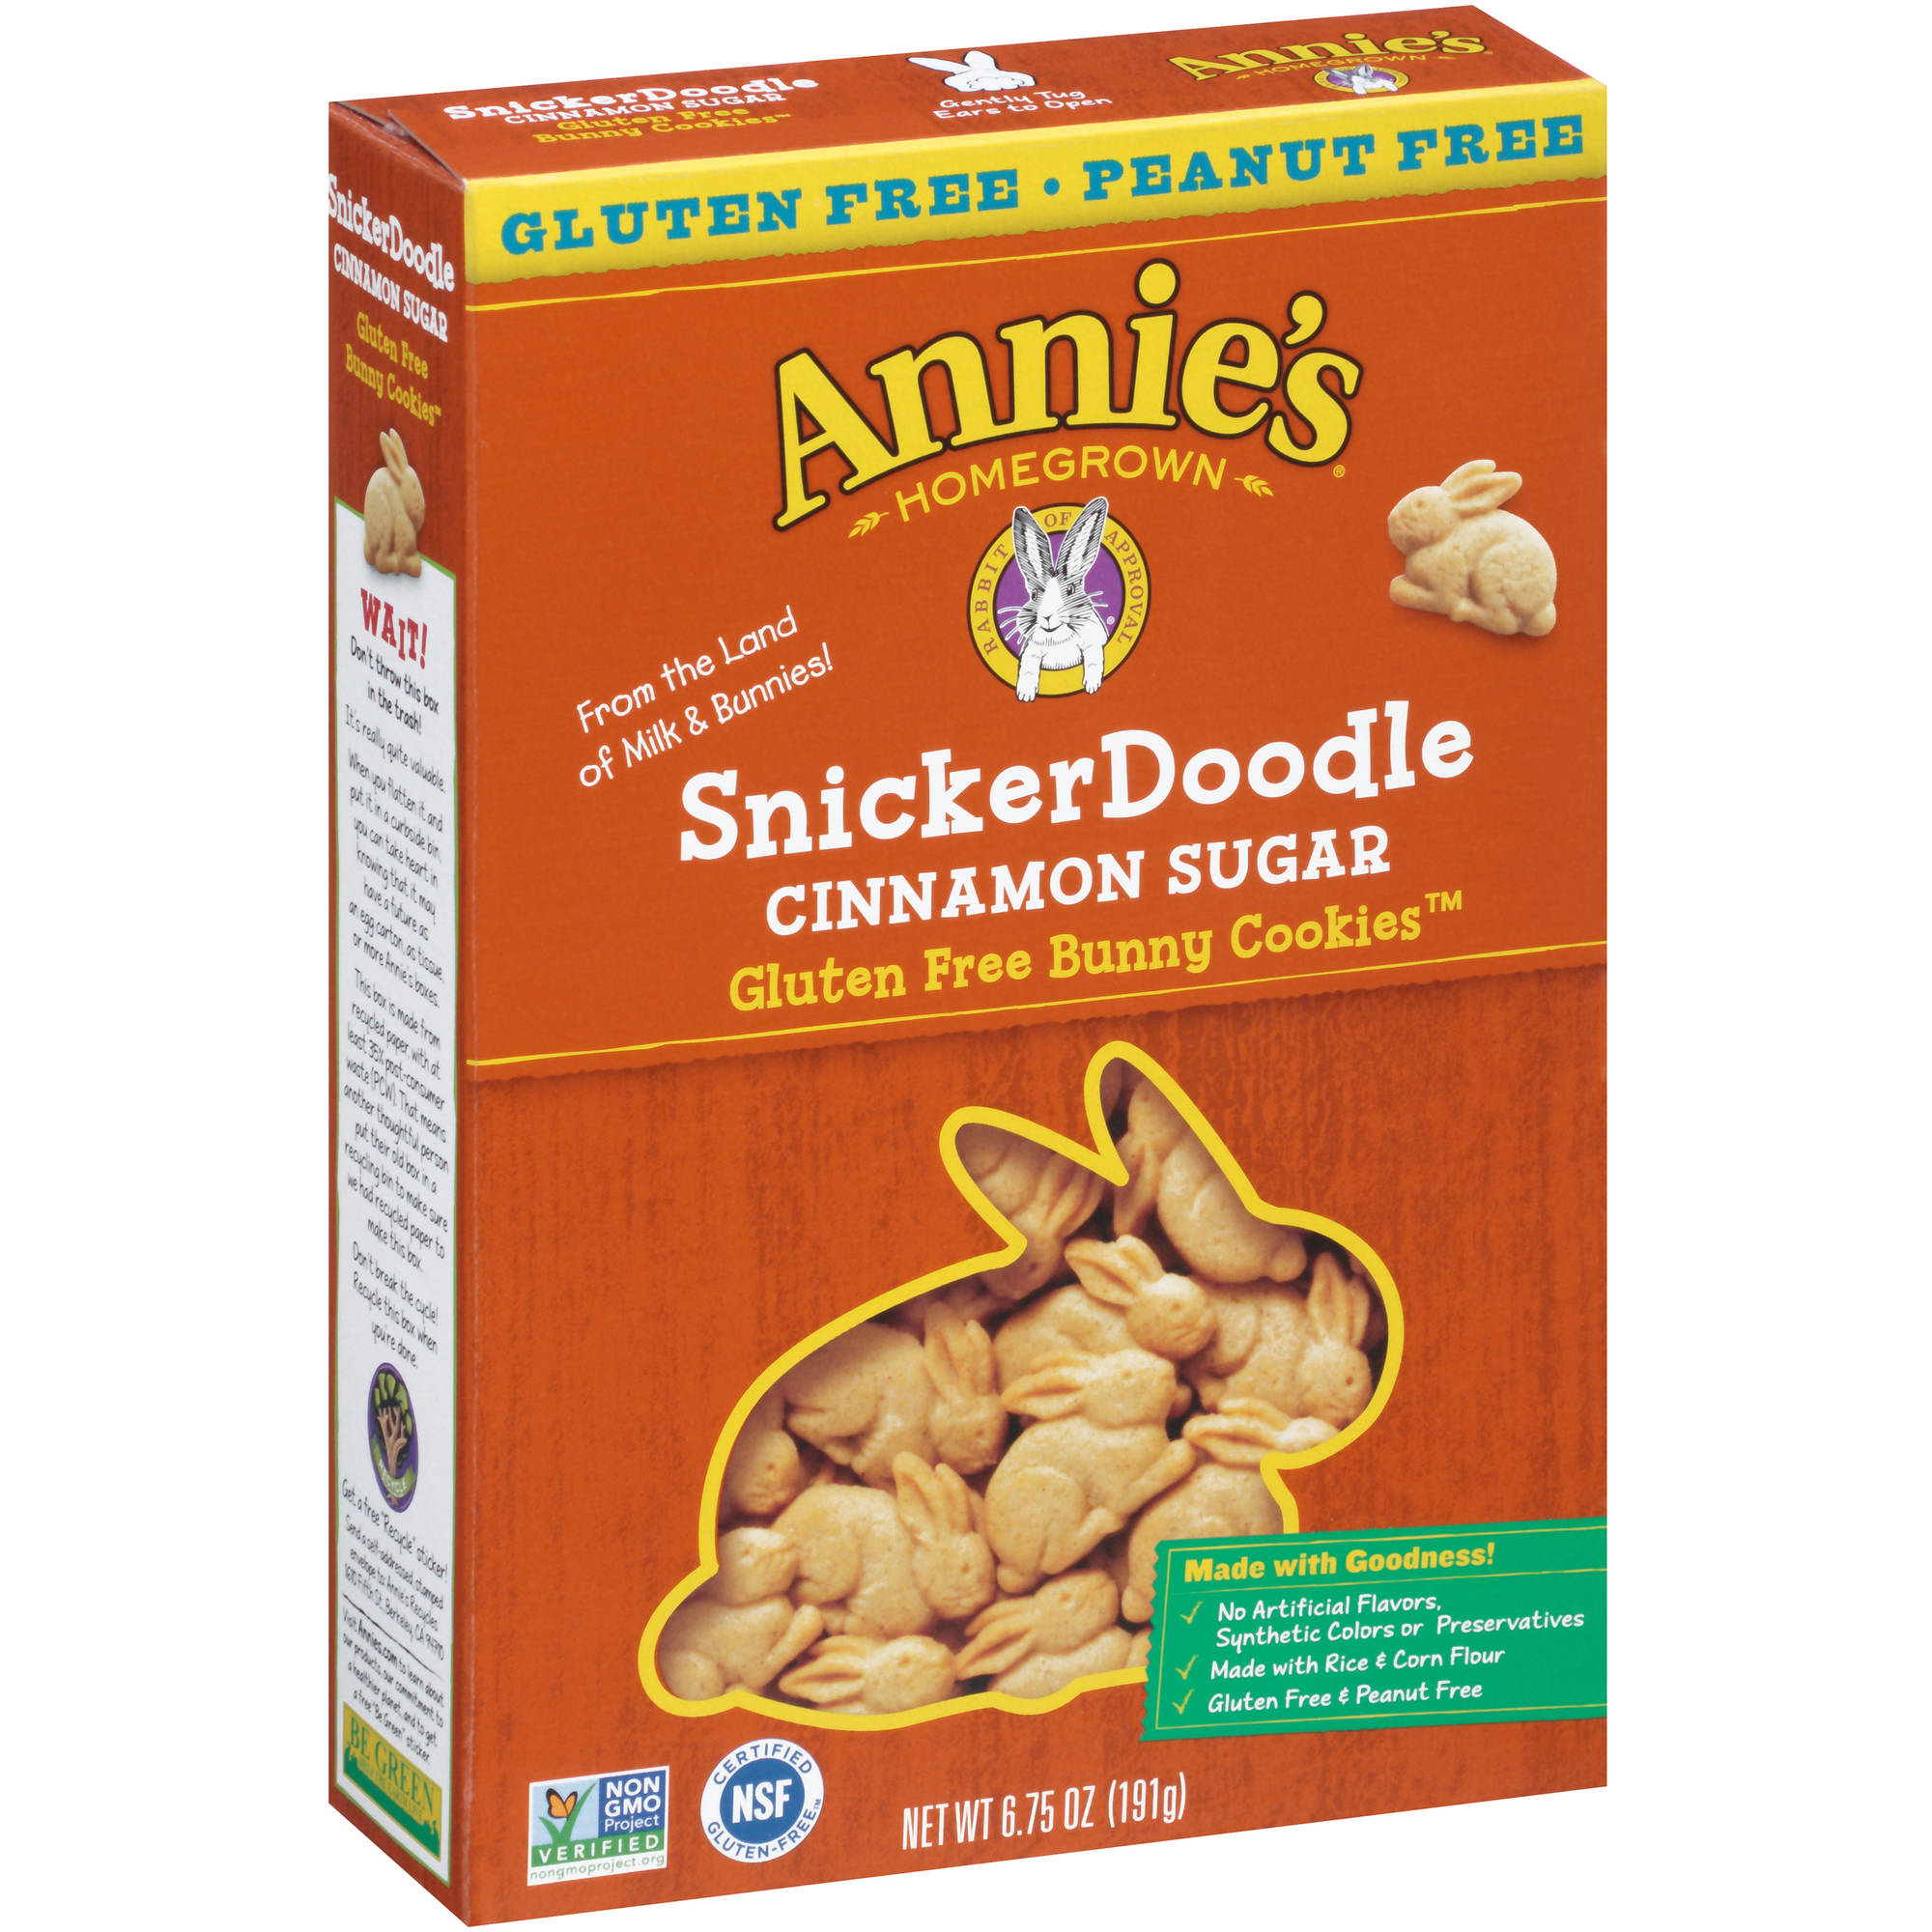 Annie's Homegrown SnickerDoodle Cinnamon Sugar Gluten Free Bunny Cookies, 6.75 oz